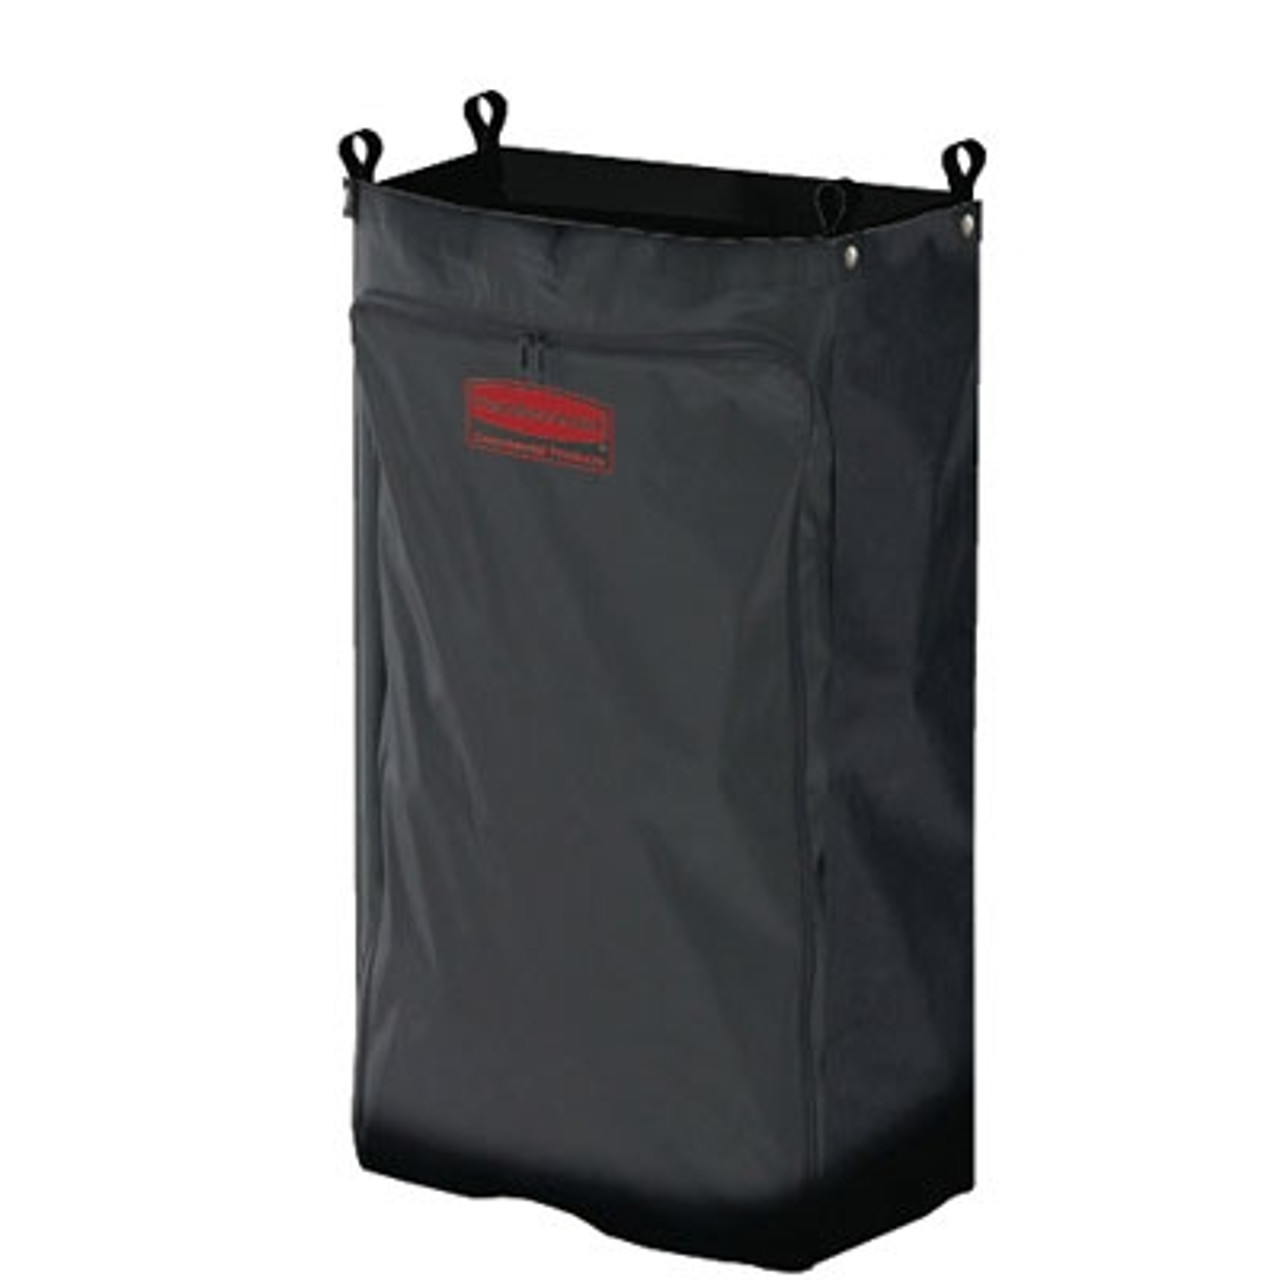 Rubbermaid Commercial Heavy-Duty Fabric Cleaning Cart Bag, 17 1/2w x 10d x 26 1/2h, Black